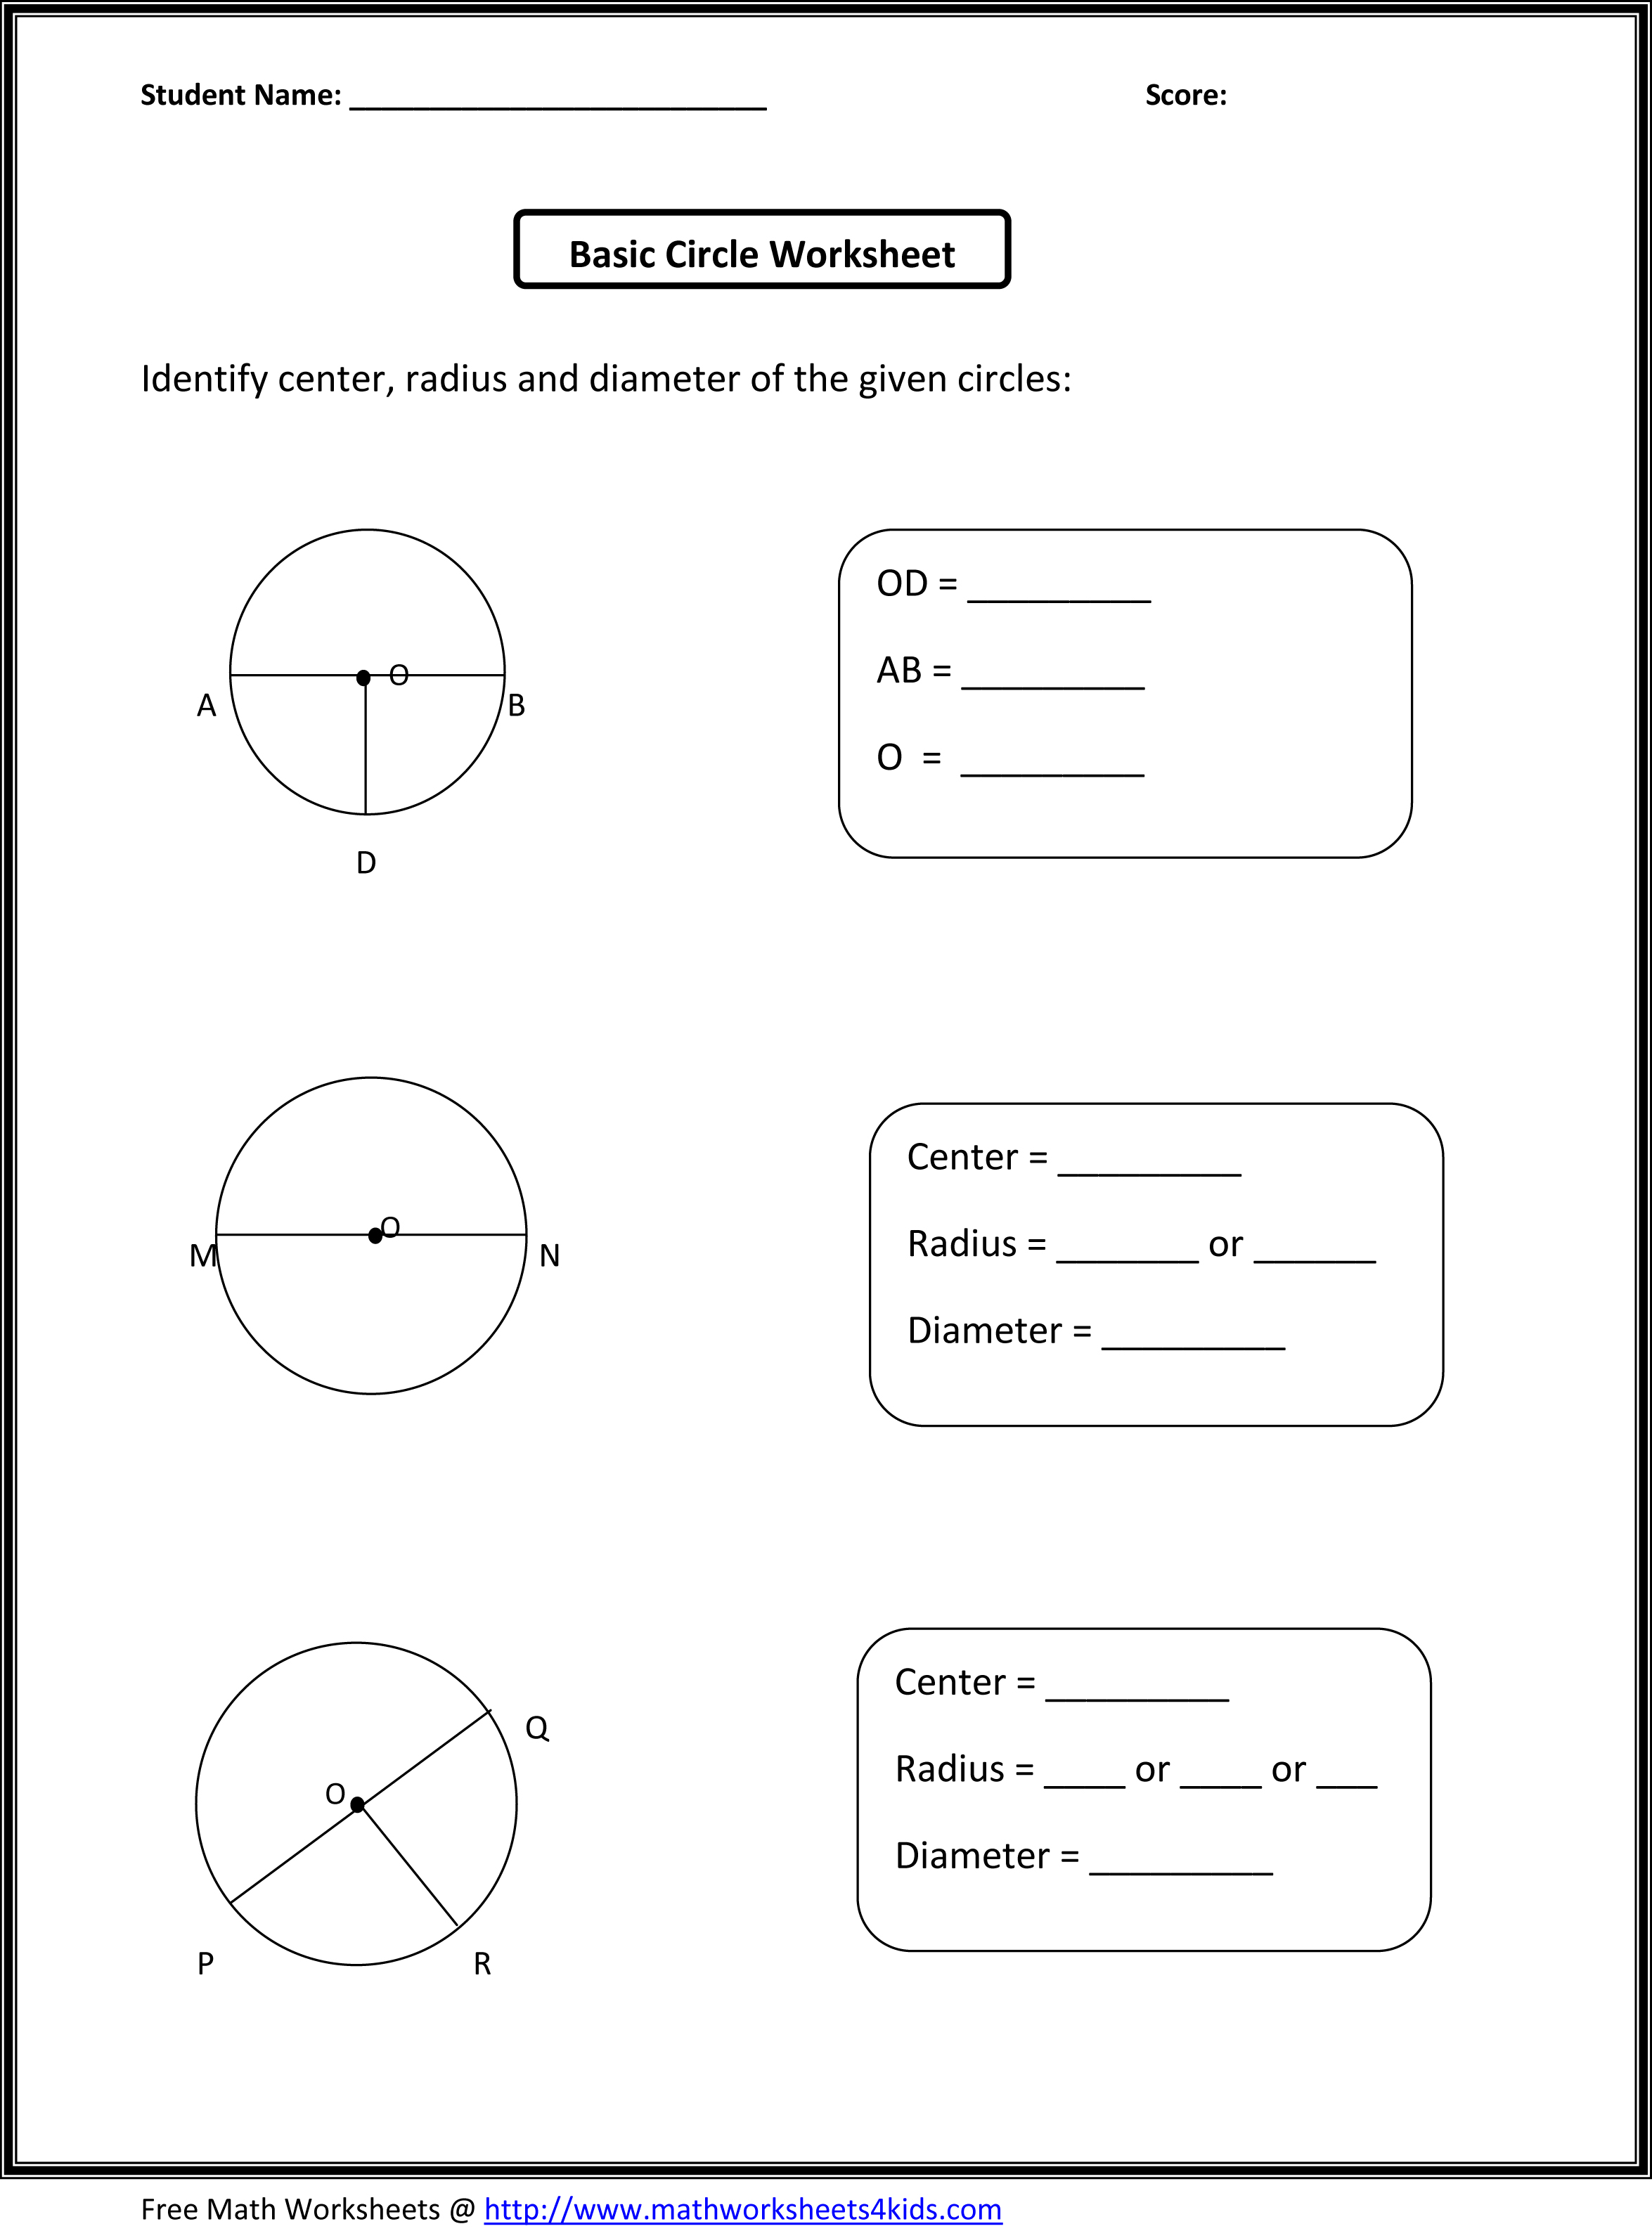 Worksheet Math For 6 Graders math for 6 graders worksheets abitlikethis third grade worksheets